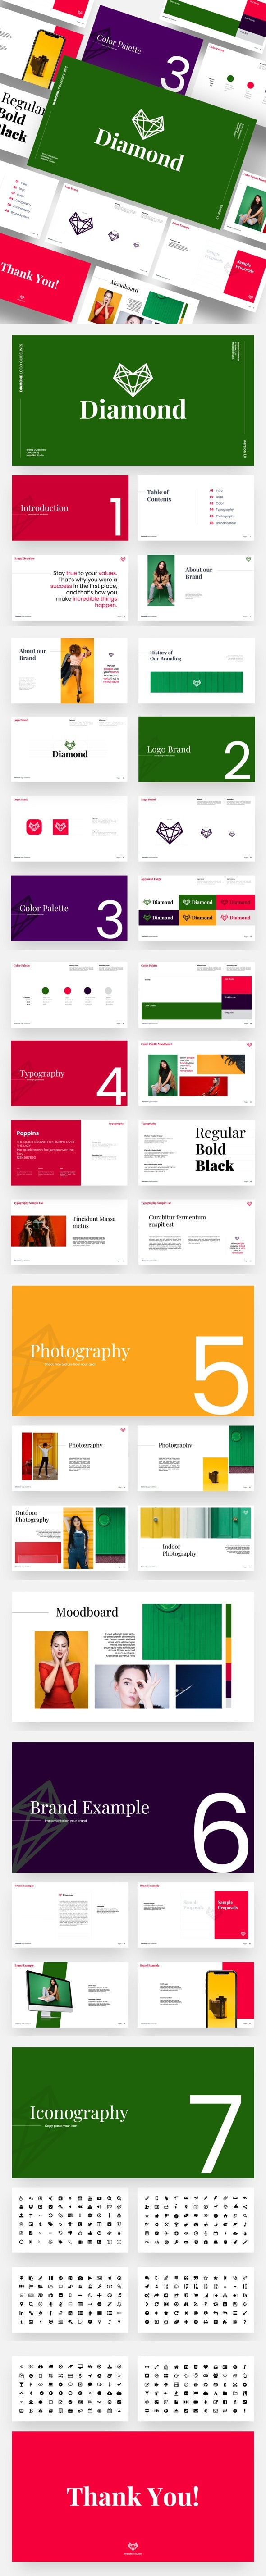 Diamond - Brand Guidelines Powerpoint Template - Creative PowerPoint Templates